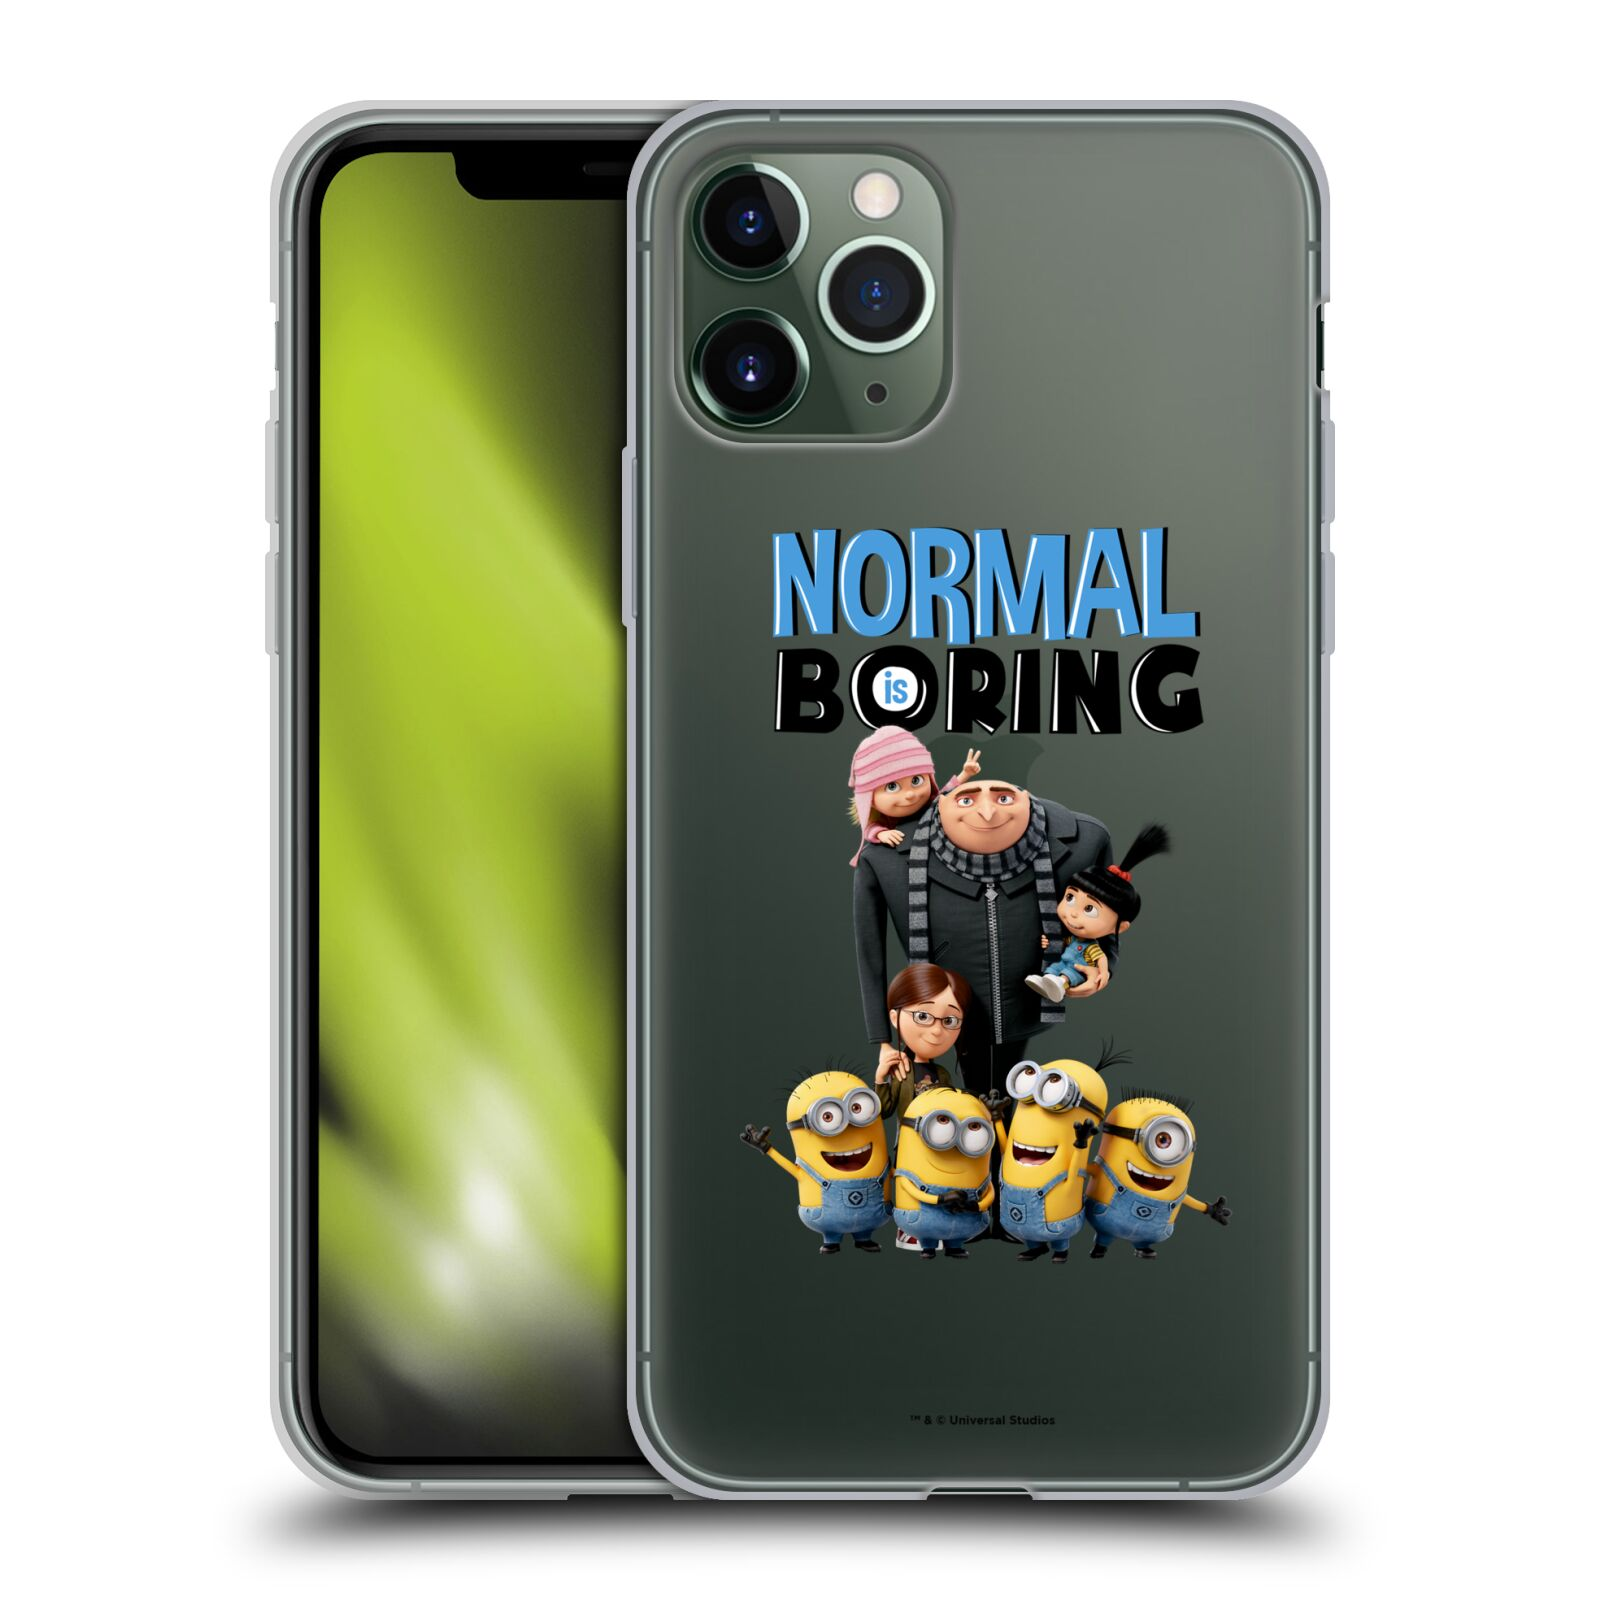 iphone 6 kryt s baterii , Silikonové pouzdro na mobil Apple iPhone 11 Pro - Head Case - Normal is boring z filmu Já, padouch - Despicable Me